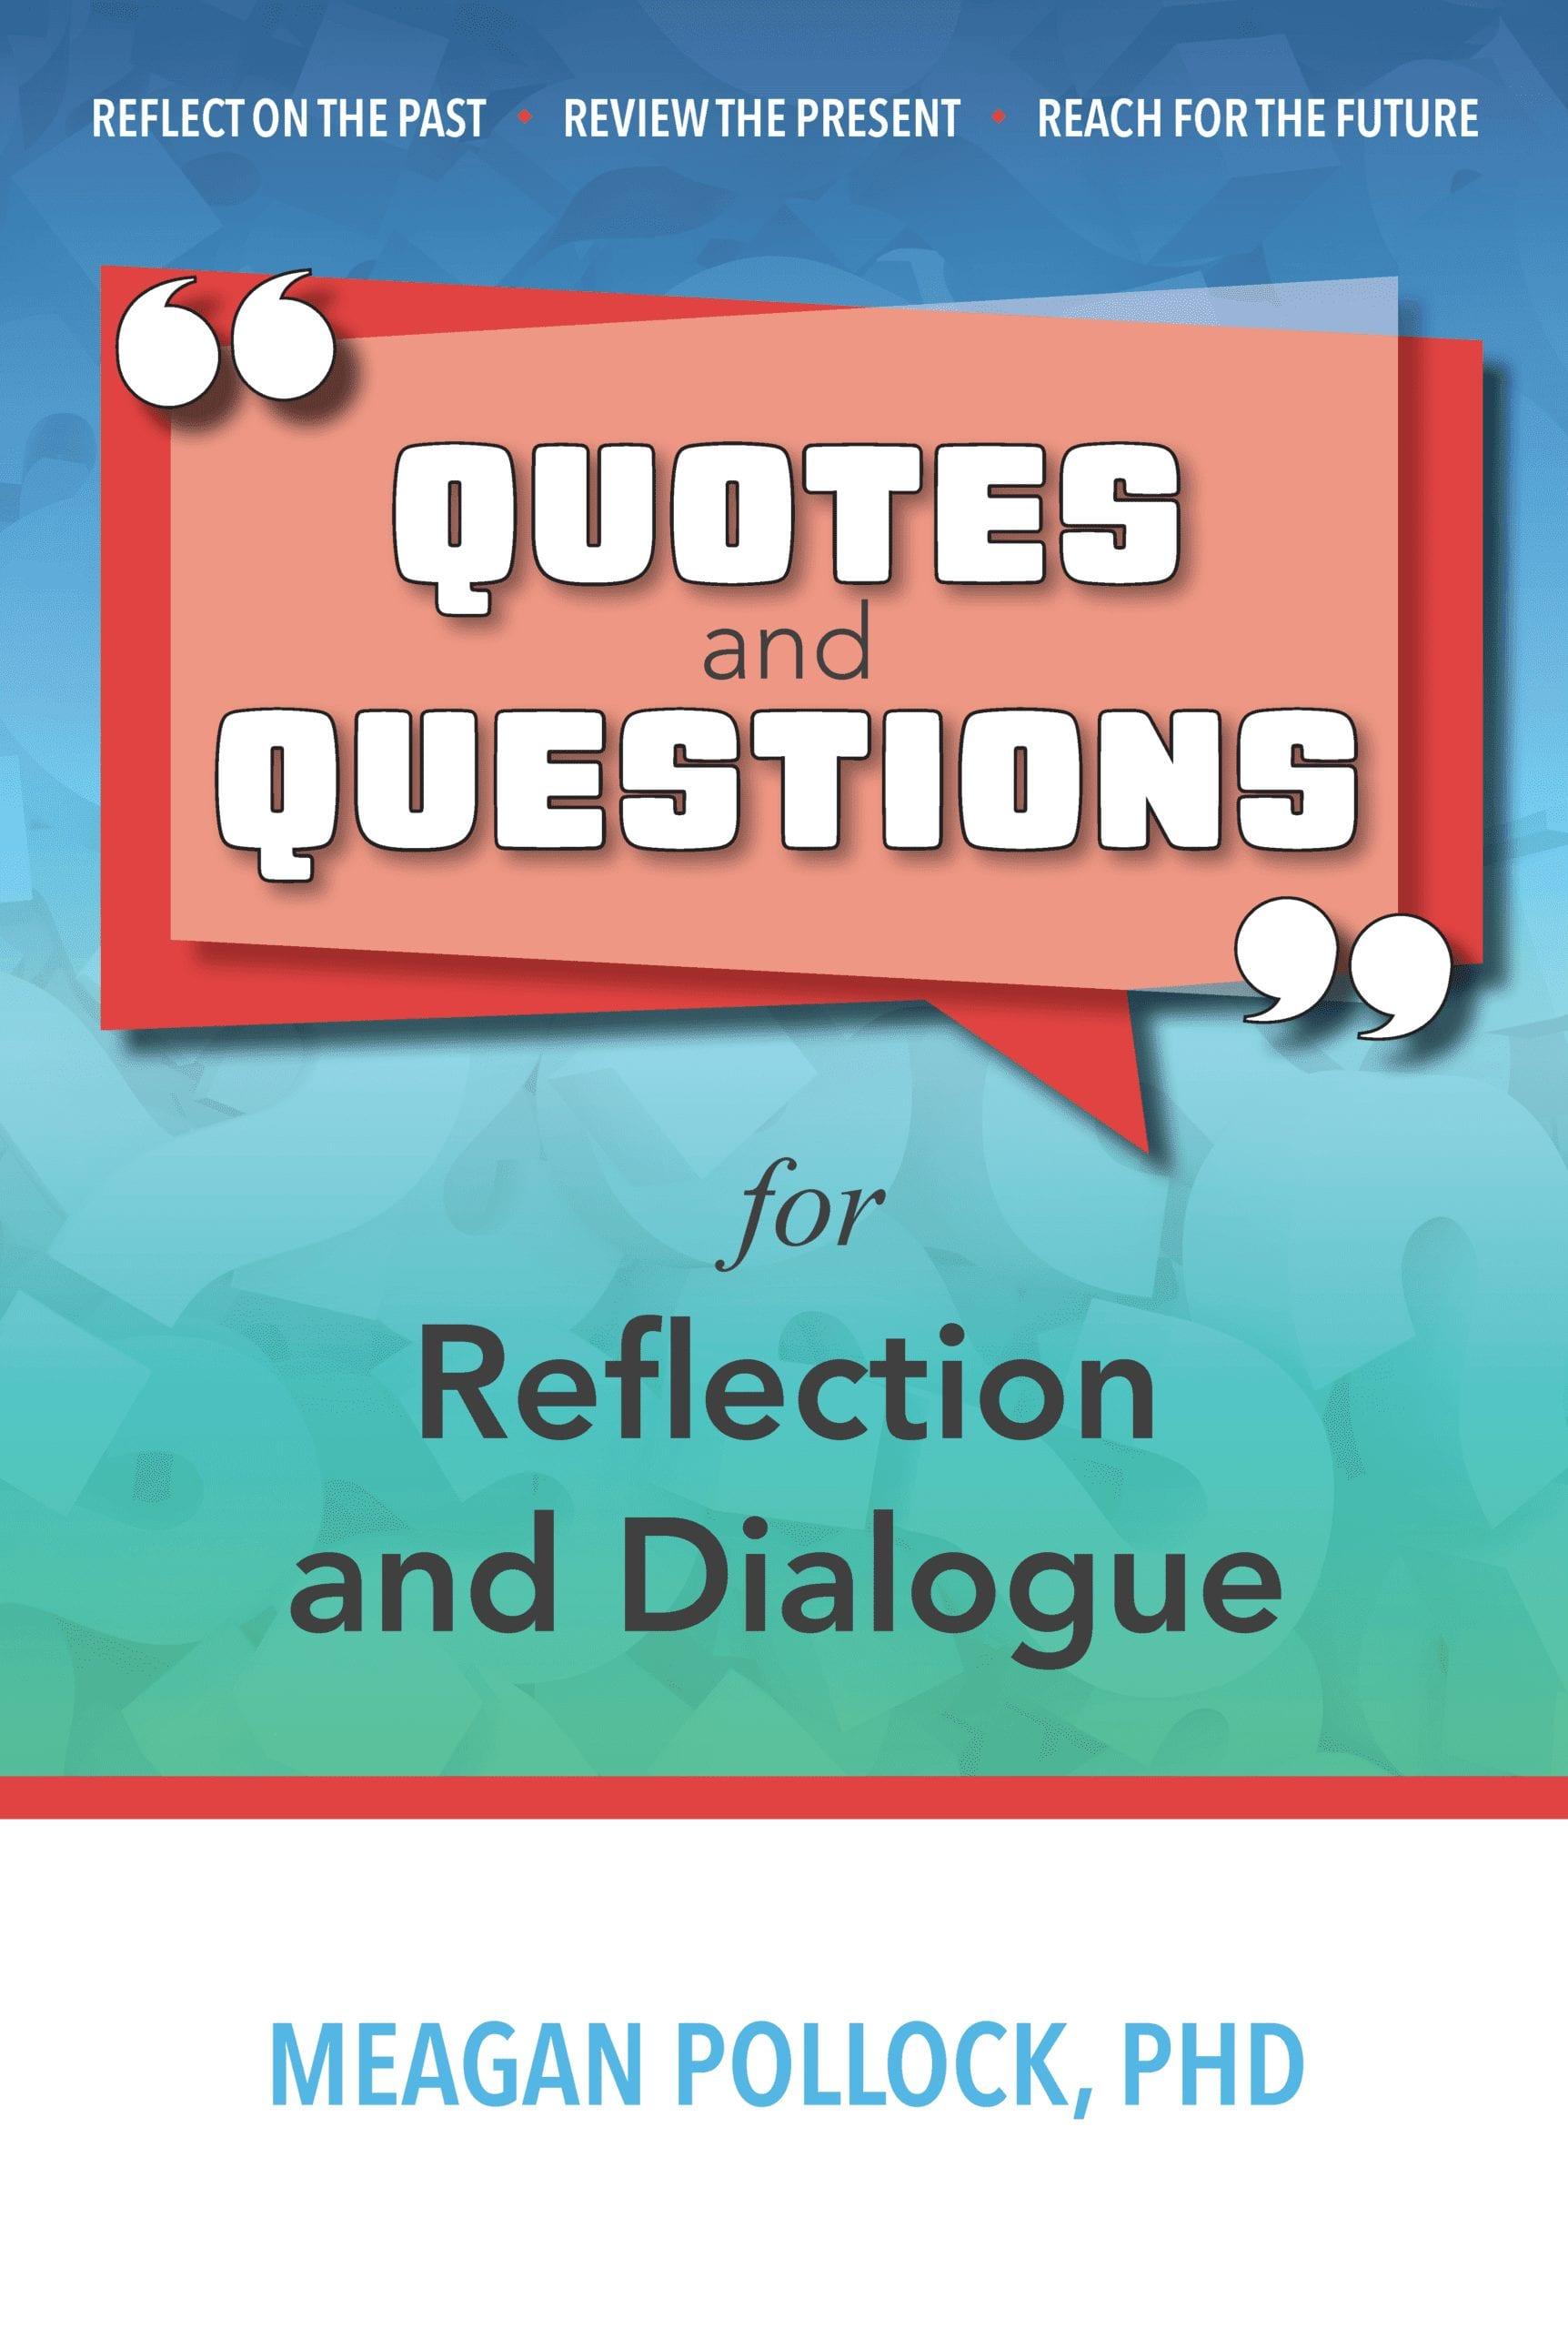 Quotes and Questions for Reflection and Dialogue by Dr. Meagan Pollock